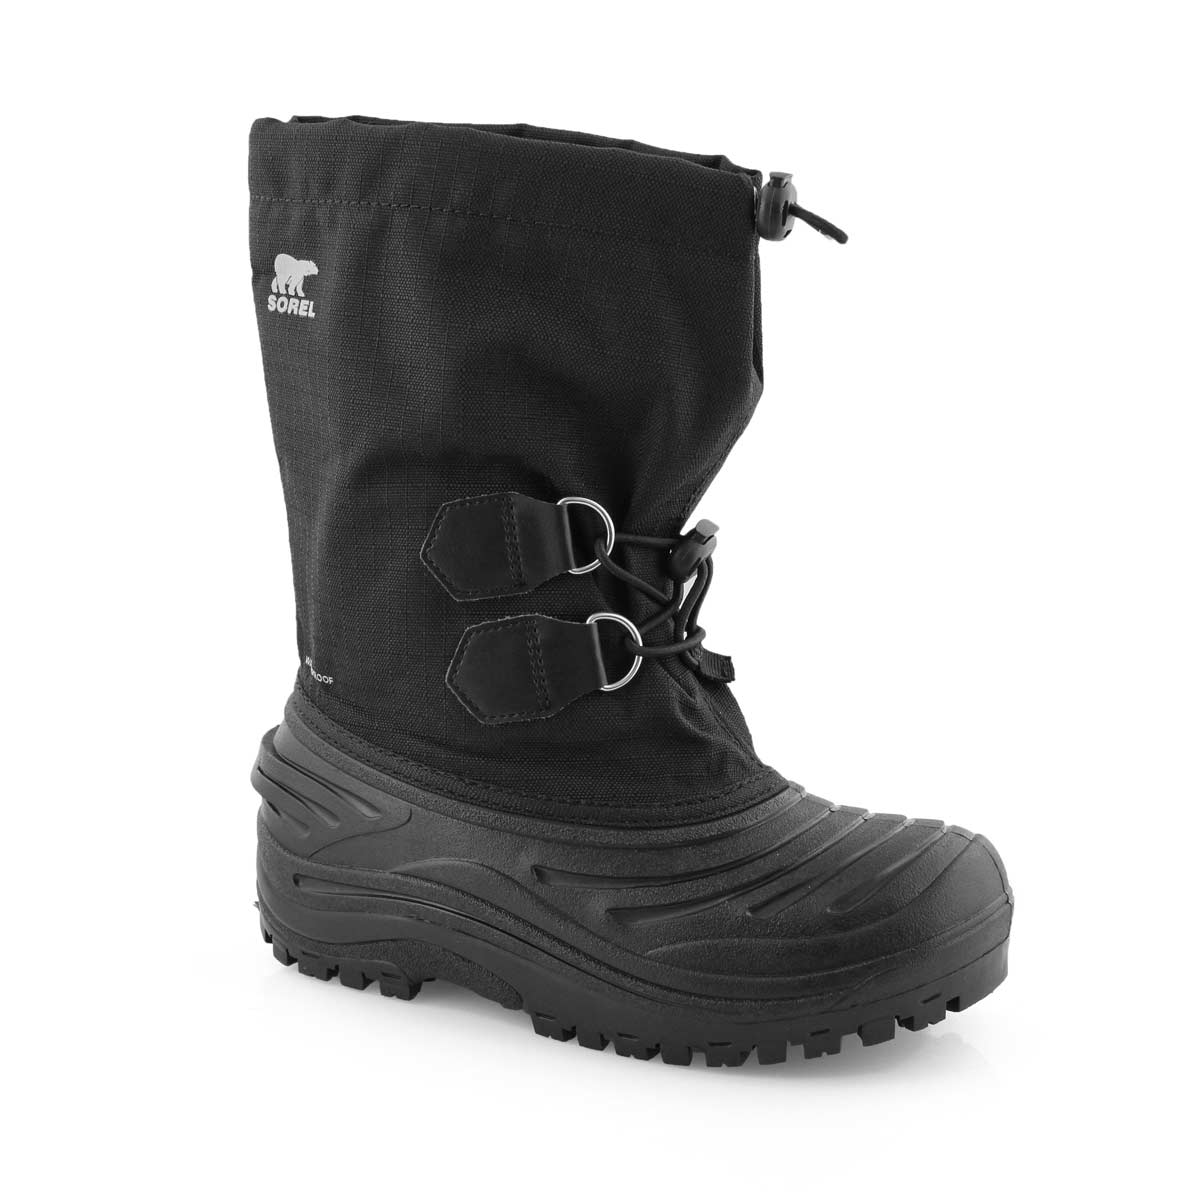 Kids' SUPER TROOPER  black/grey snow boots